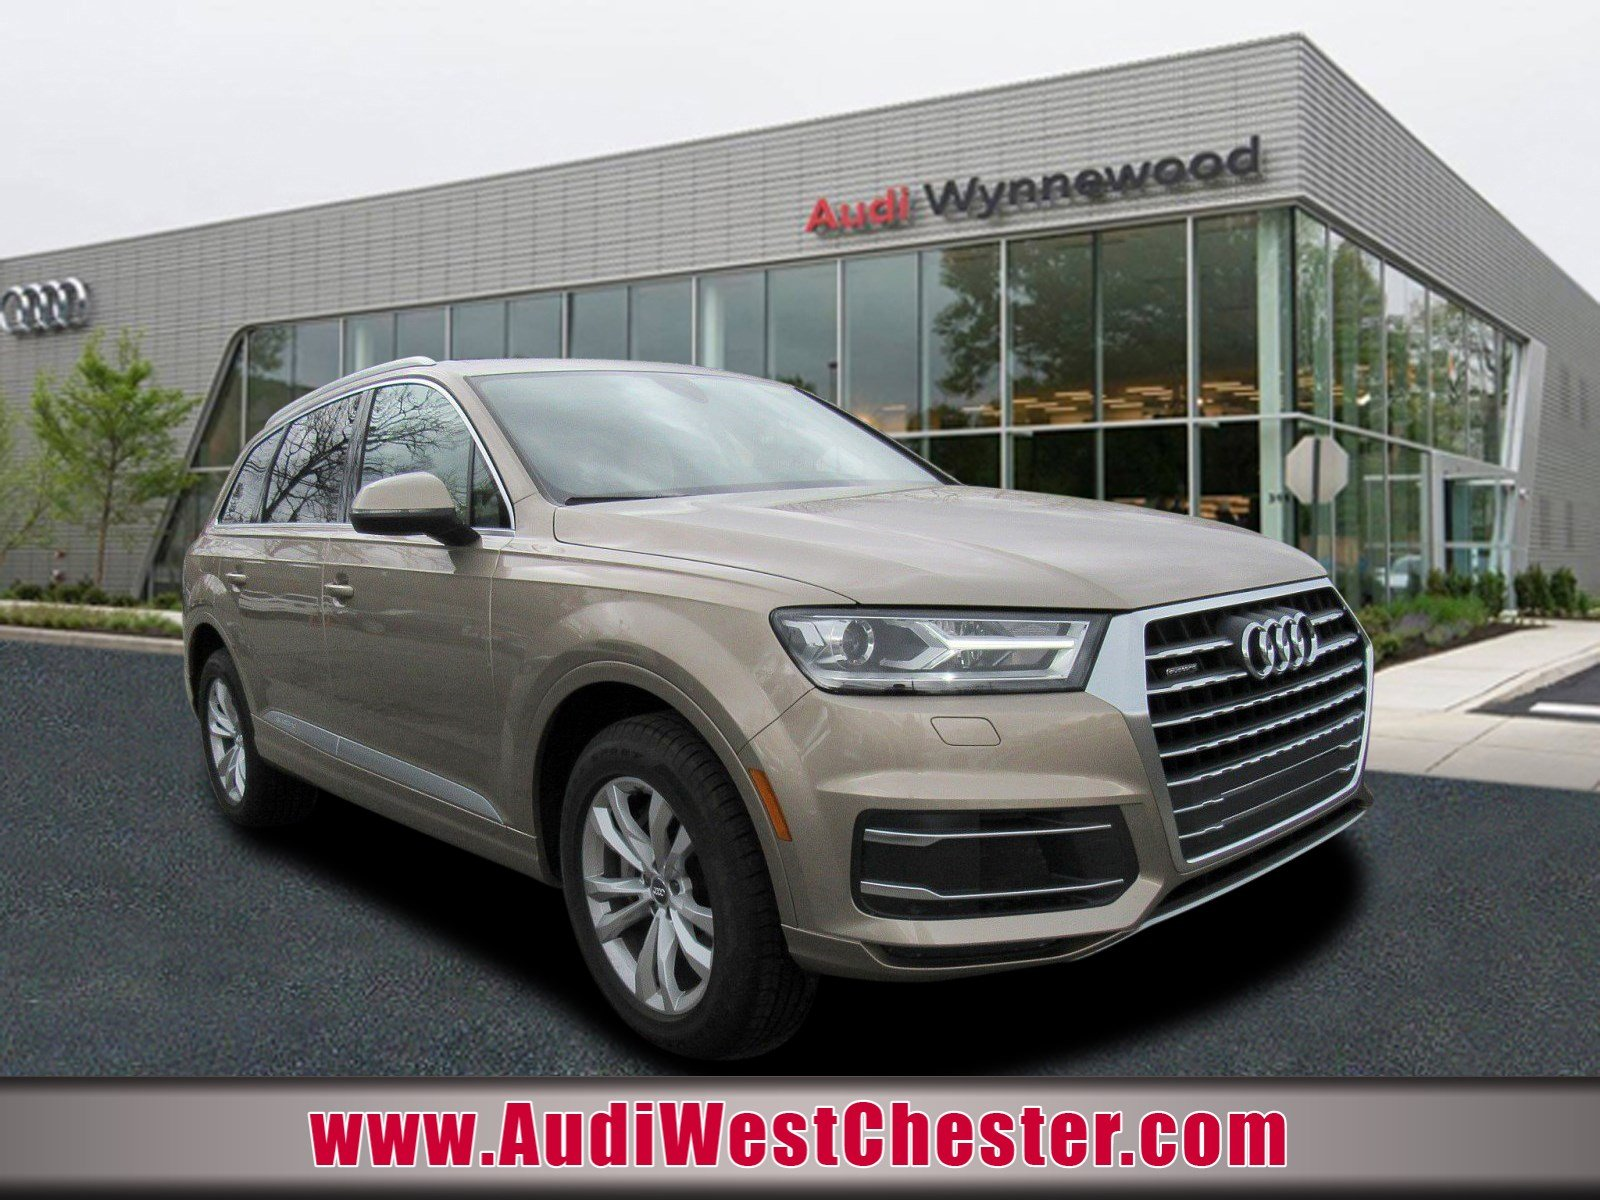 New Audi Q7 In Wynnewood Pa Inventory Photos Videos Features